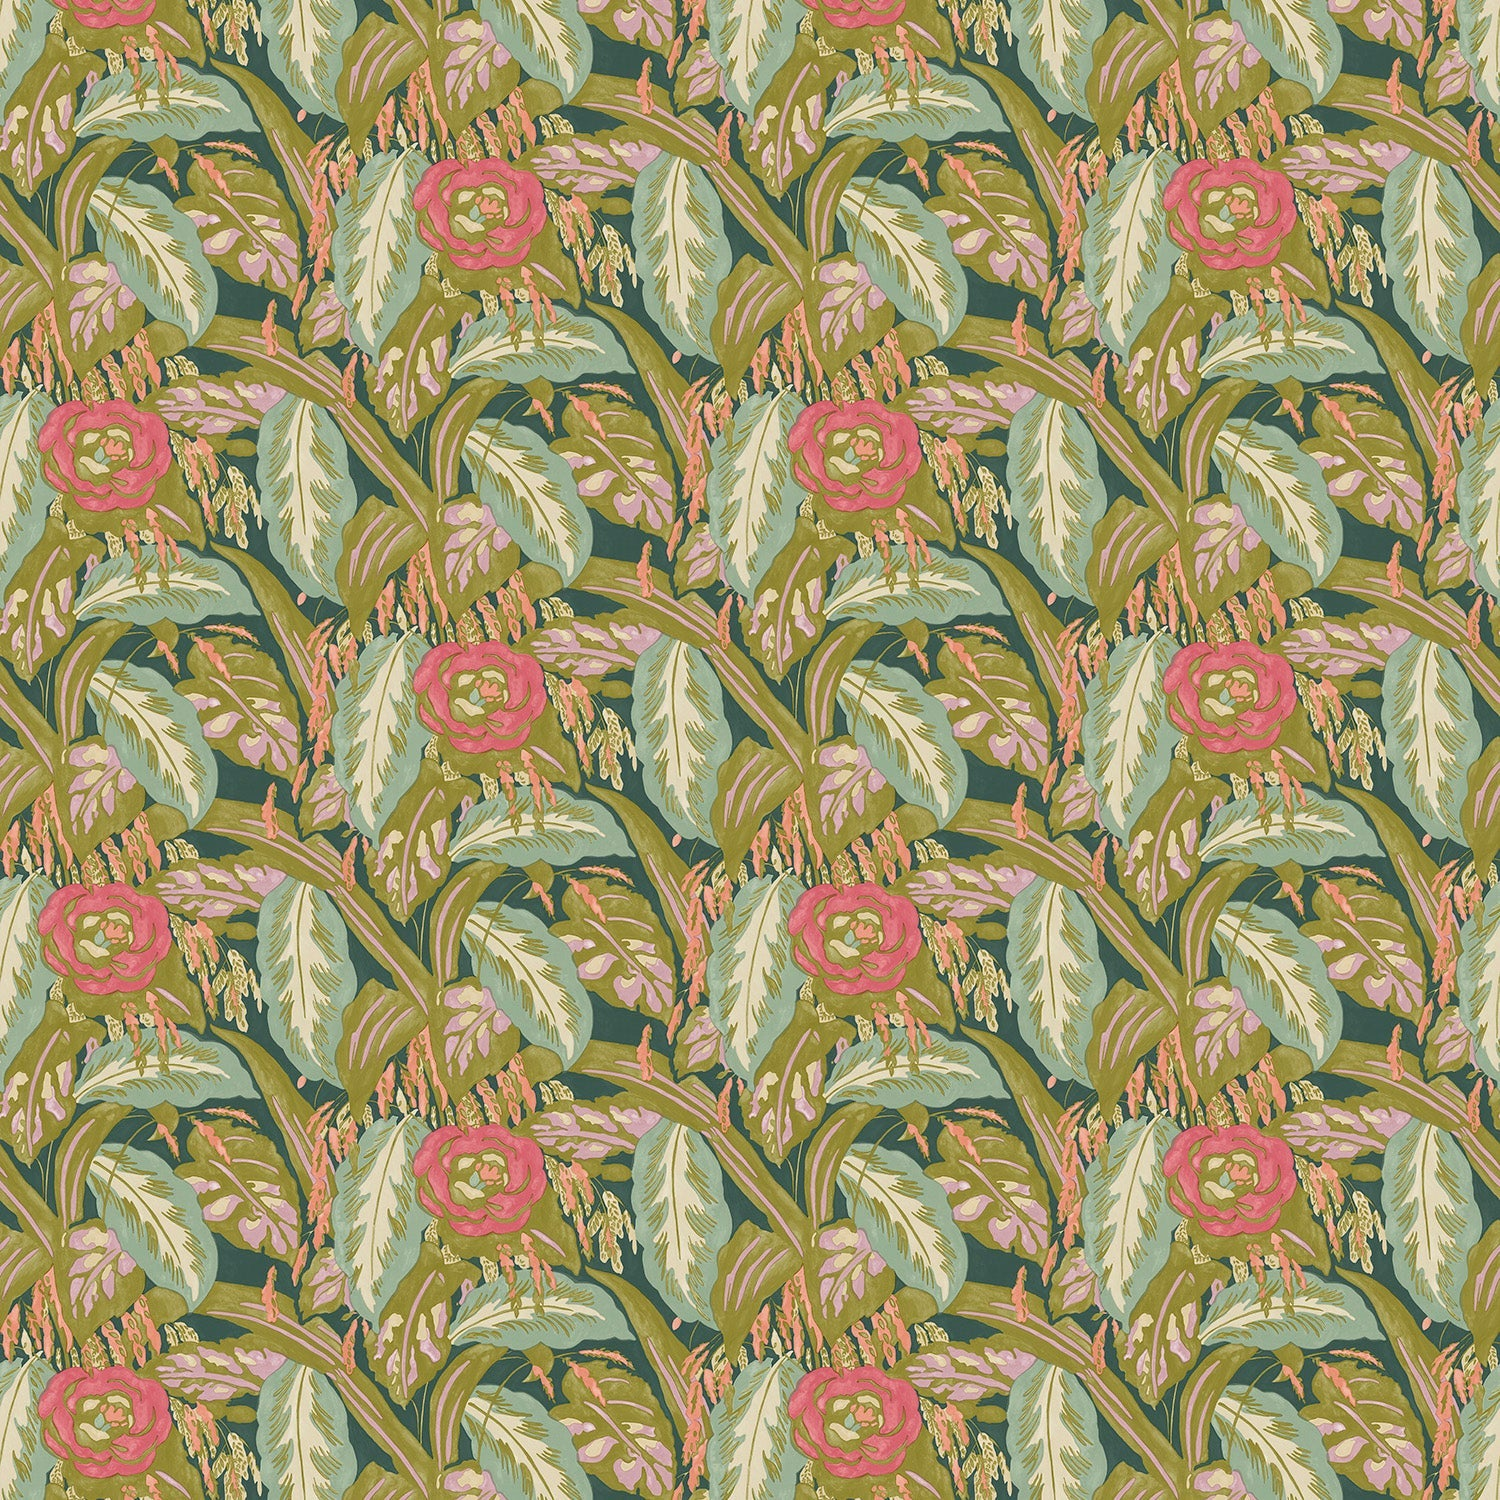 Fabric swatch of a floral velvet fabric with olive green and turquoise colours, suitable for curtains and upholstery and with a stain resistant finish